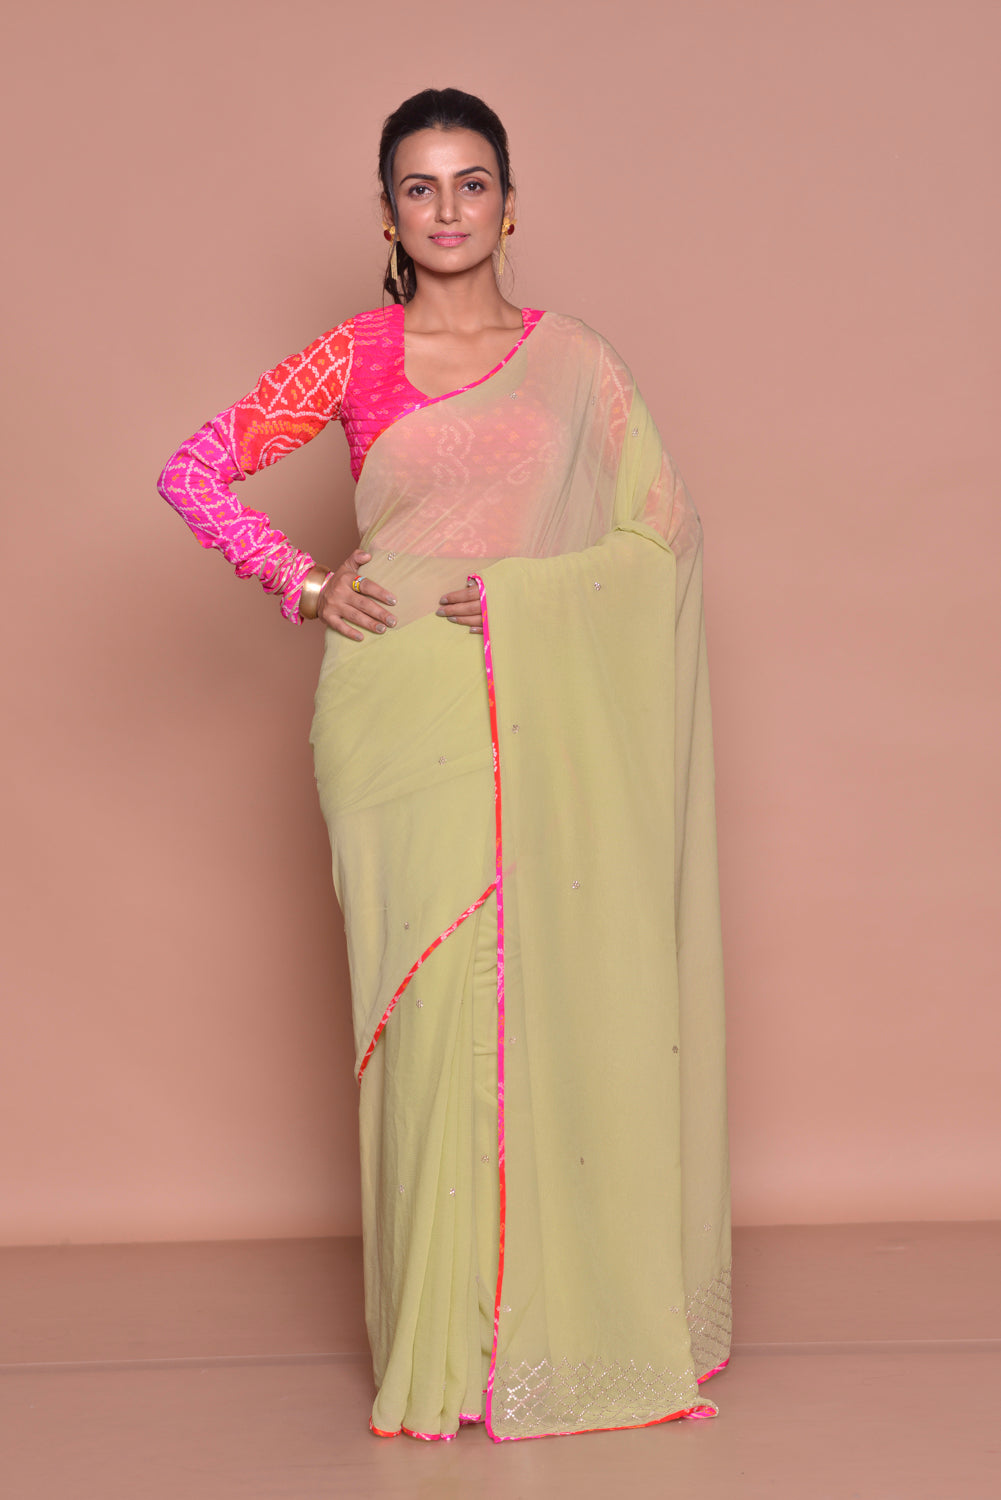 Buy pistachio green embroidered sari online in USA with pink bandhej saree blouse. Be occasion ready with exquisite range of designer sarees with blouse, bridal sarees from Pure Elegance Indian boutique in USA.-full view